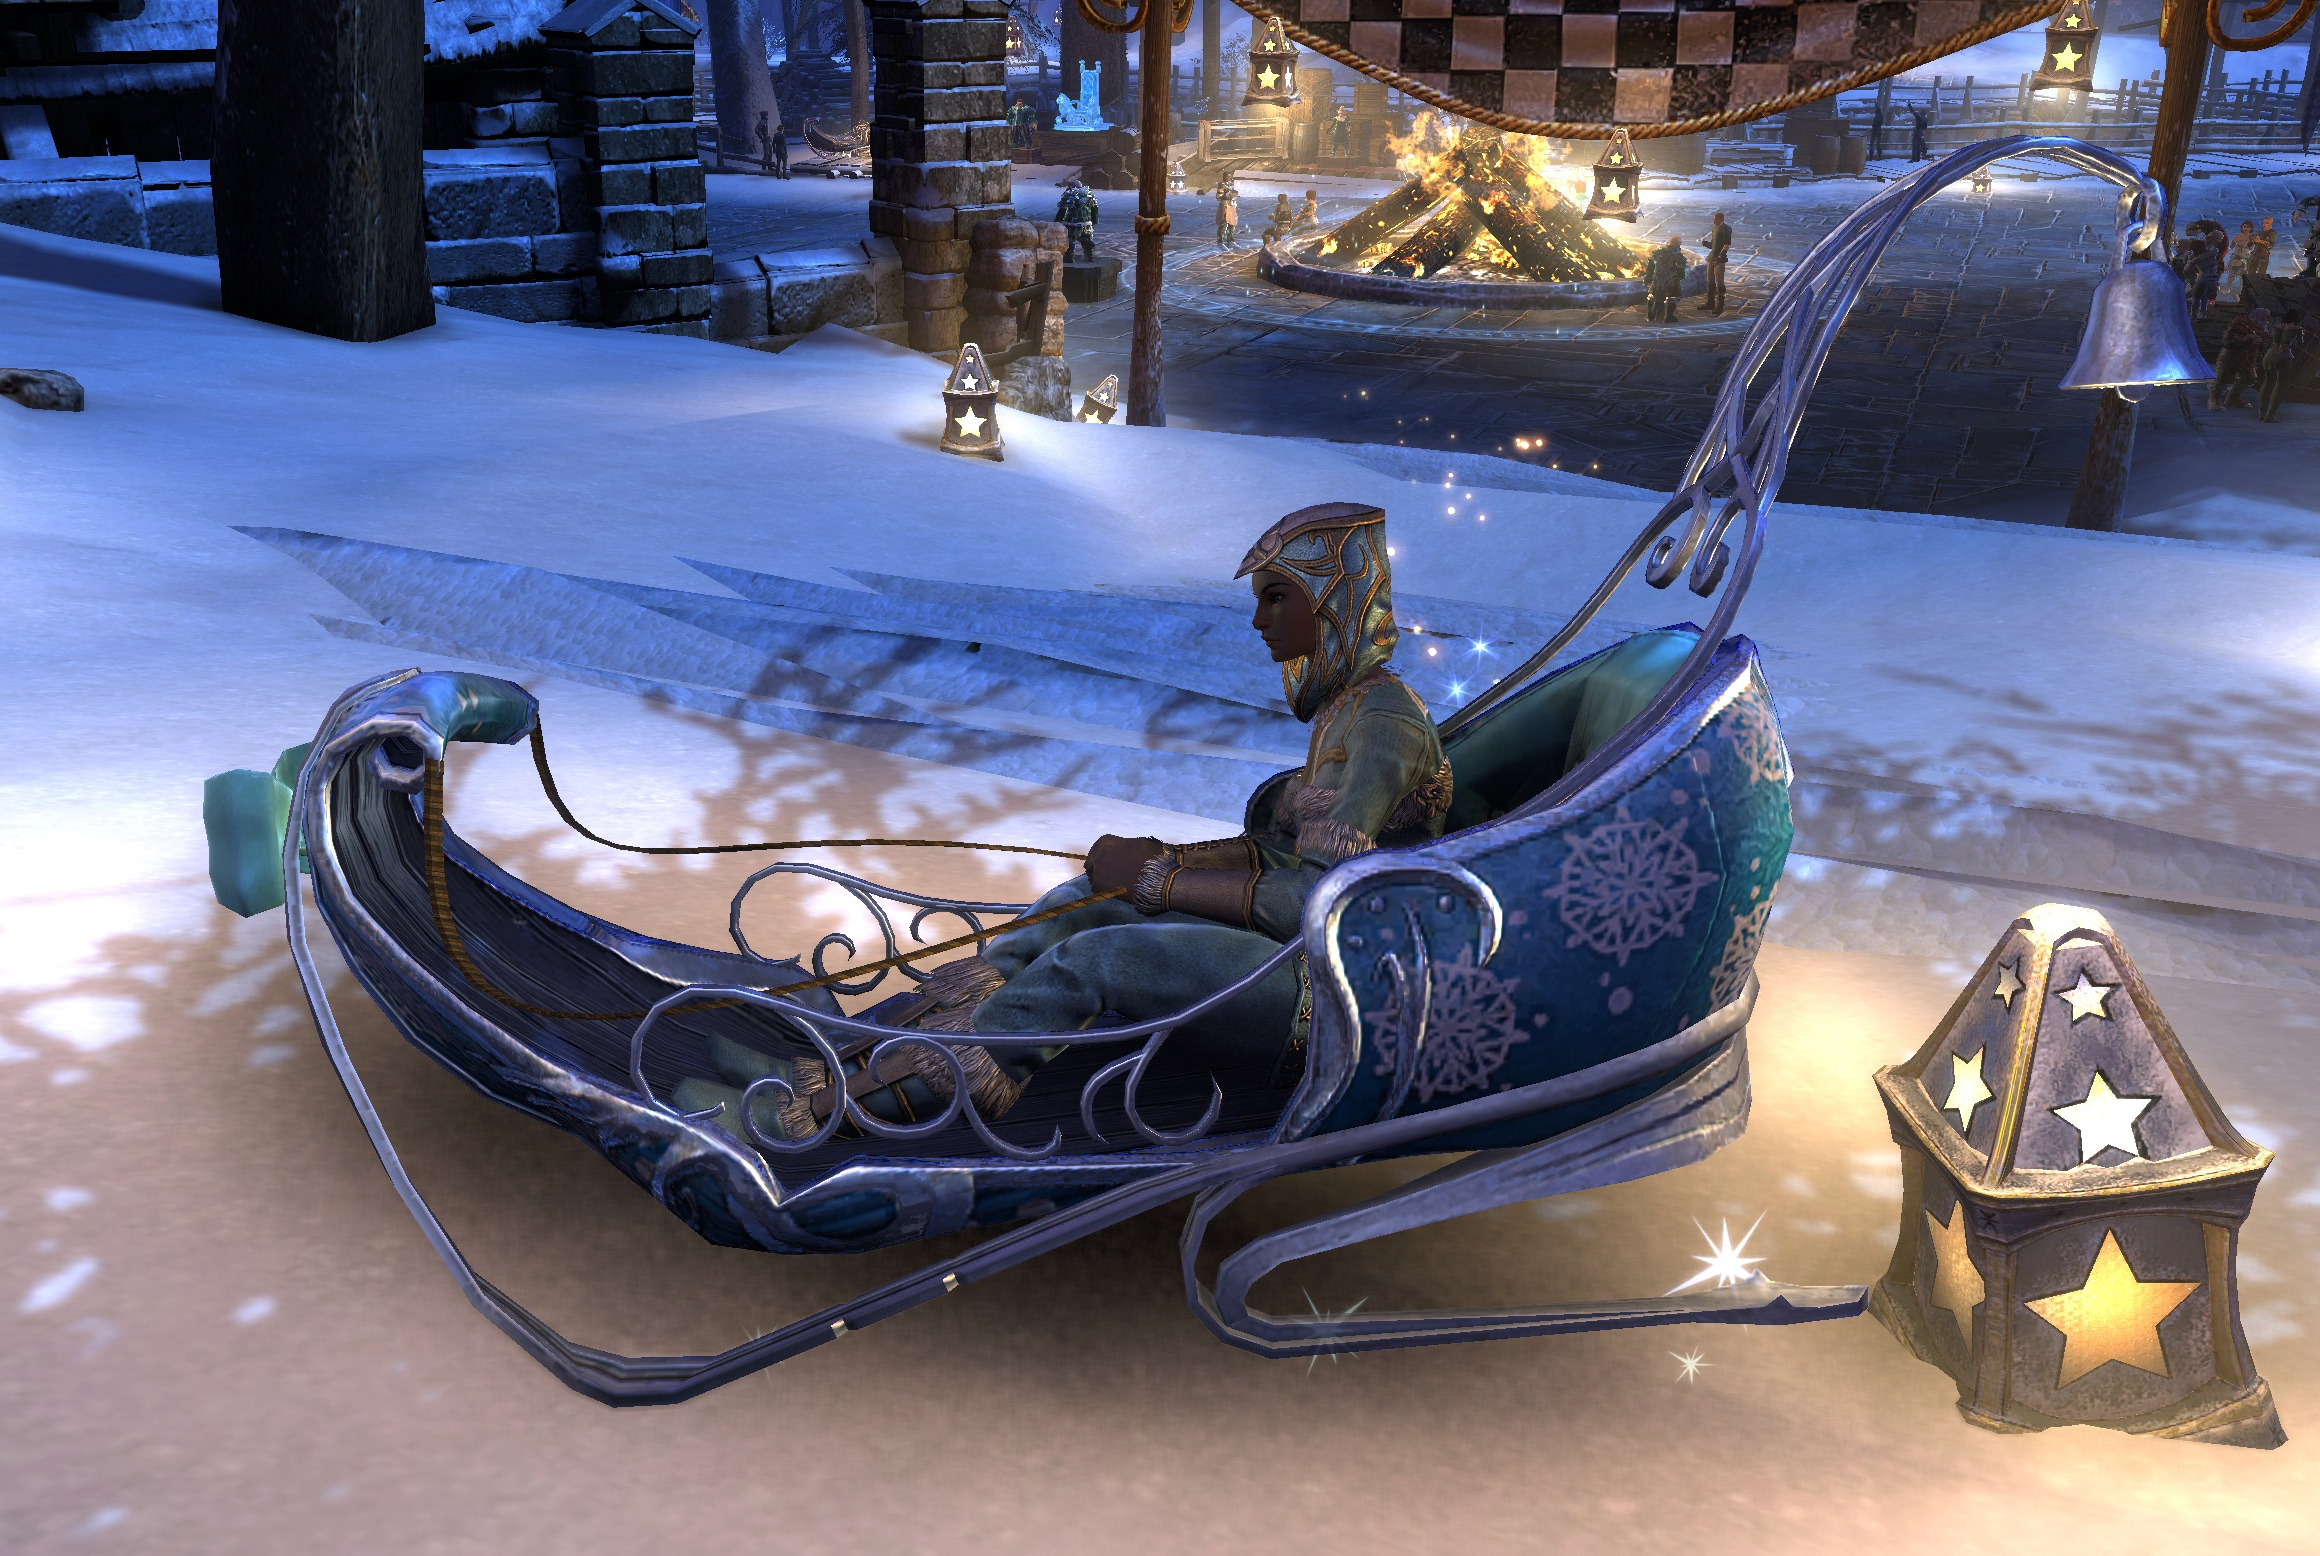 neverwinter how to get chultan tiger xbox